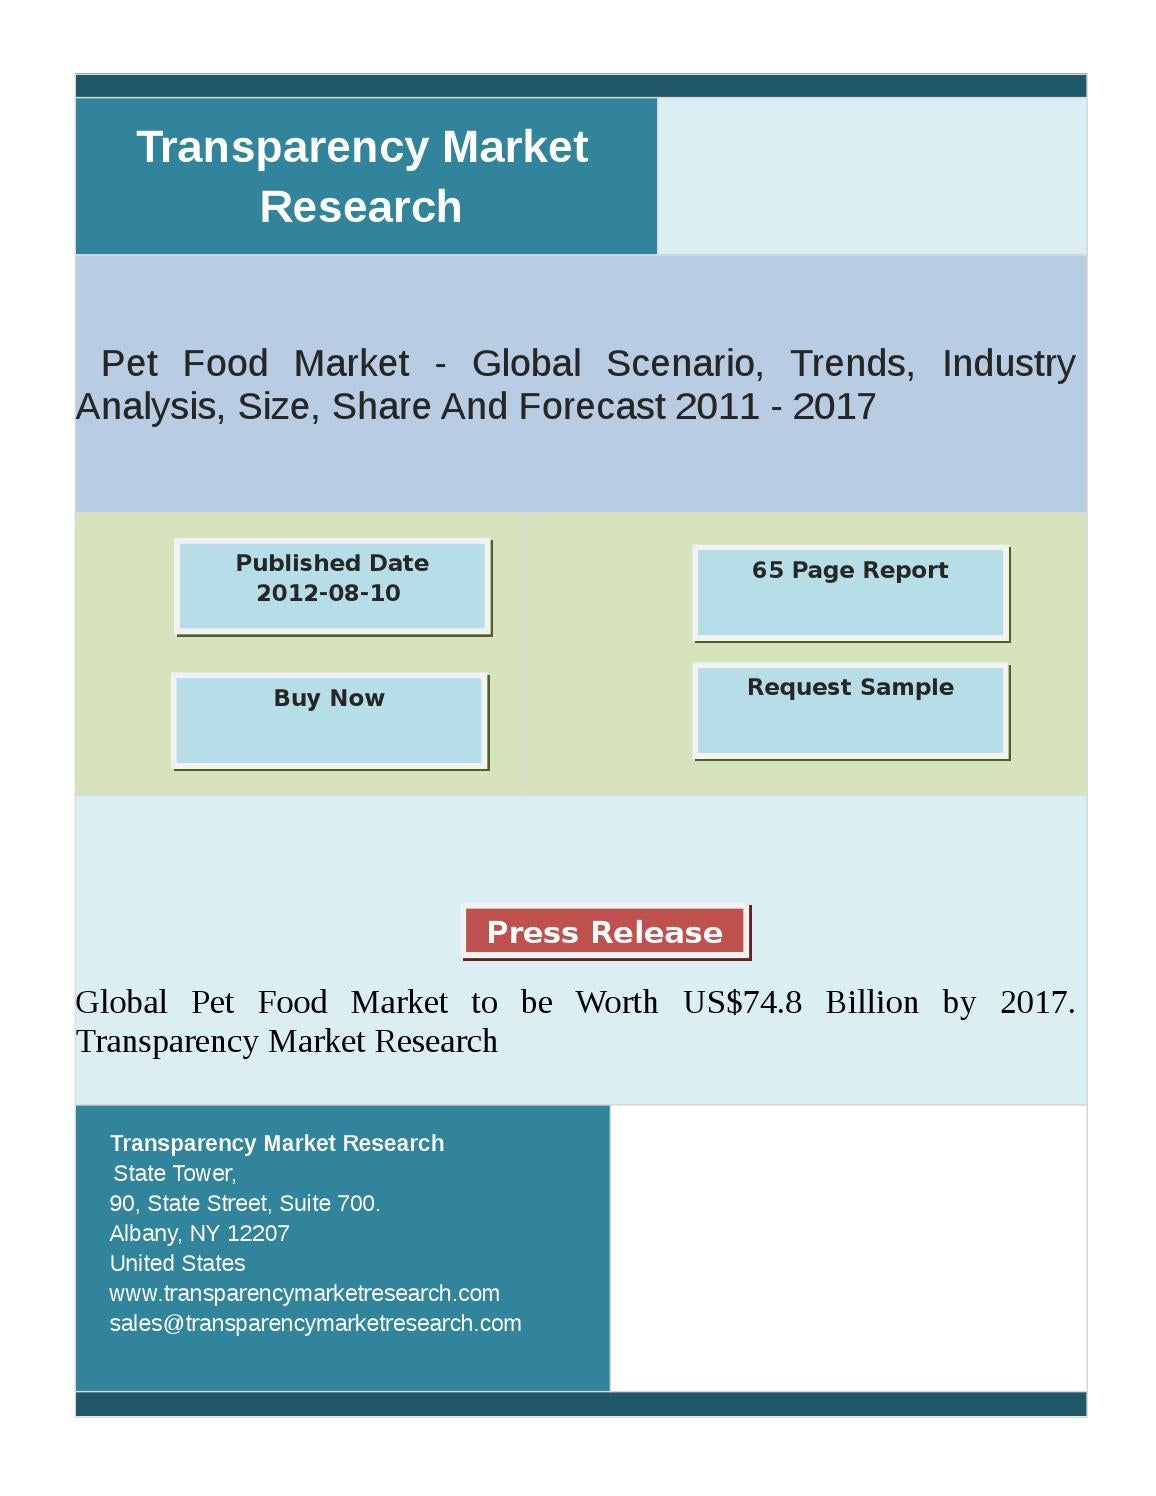 Global Pet Food Market to be Worth US$74 8 Billion by 2017